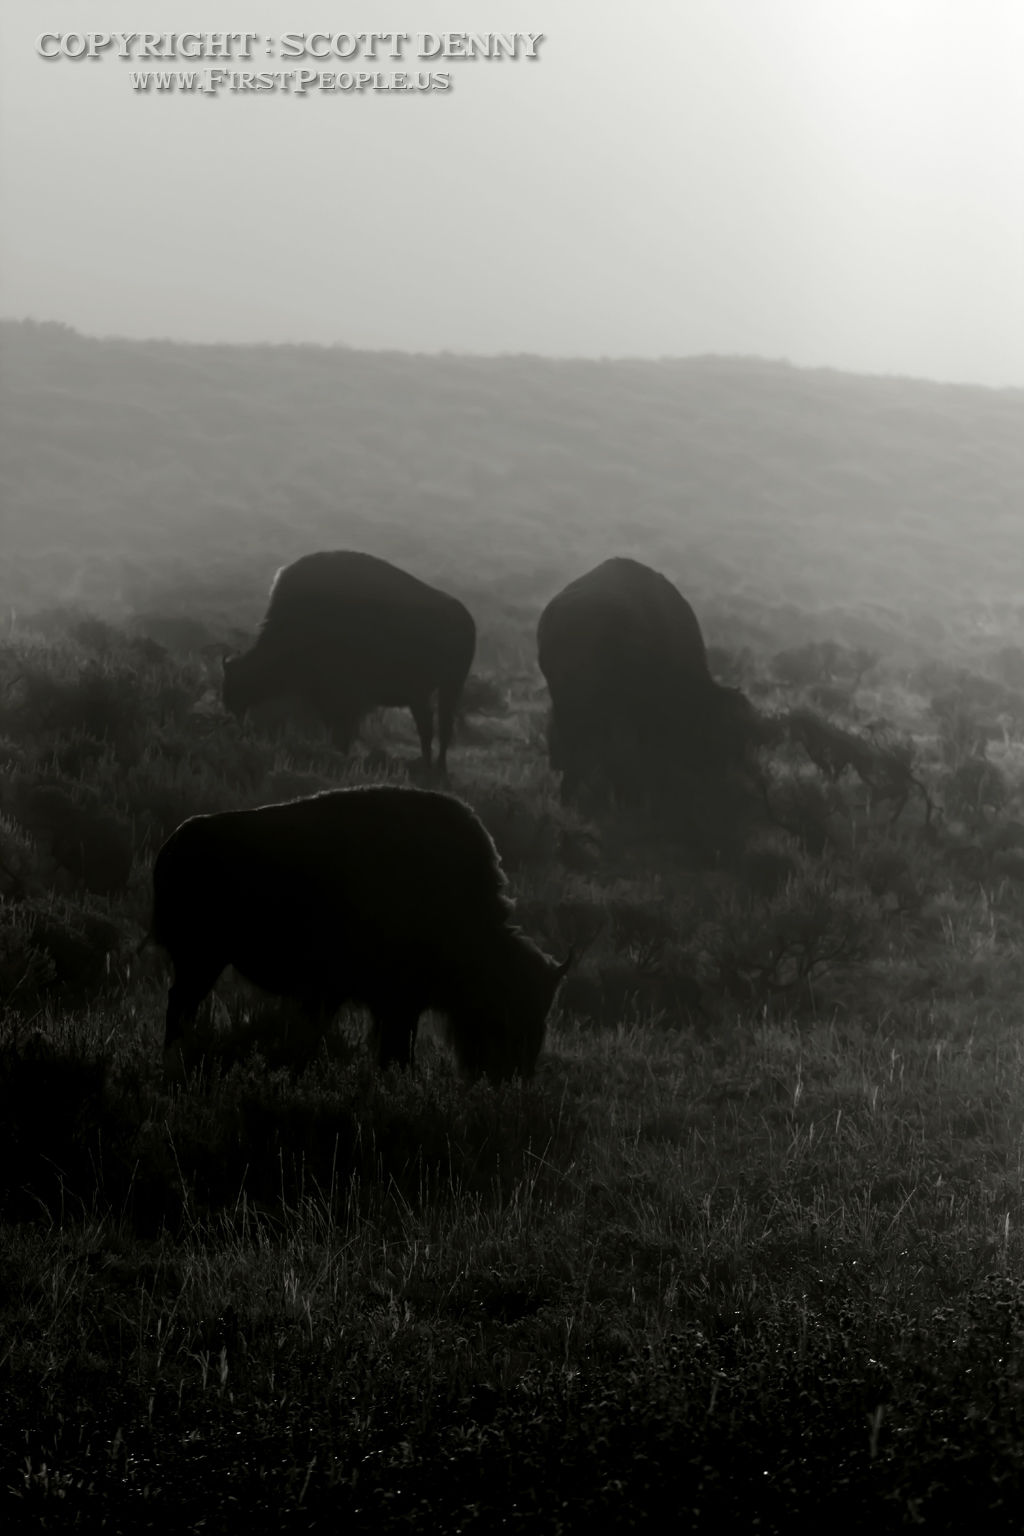 Three Bison grazing on the grass during a misty day.